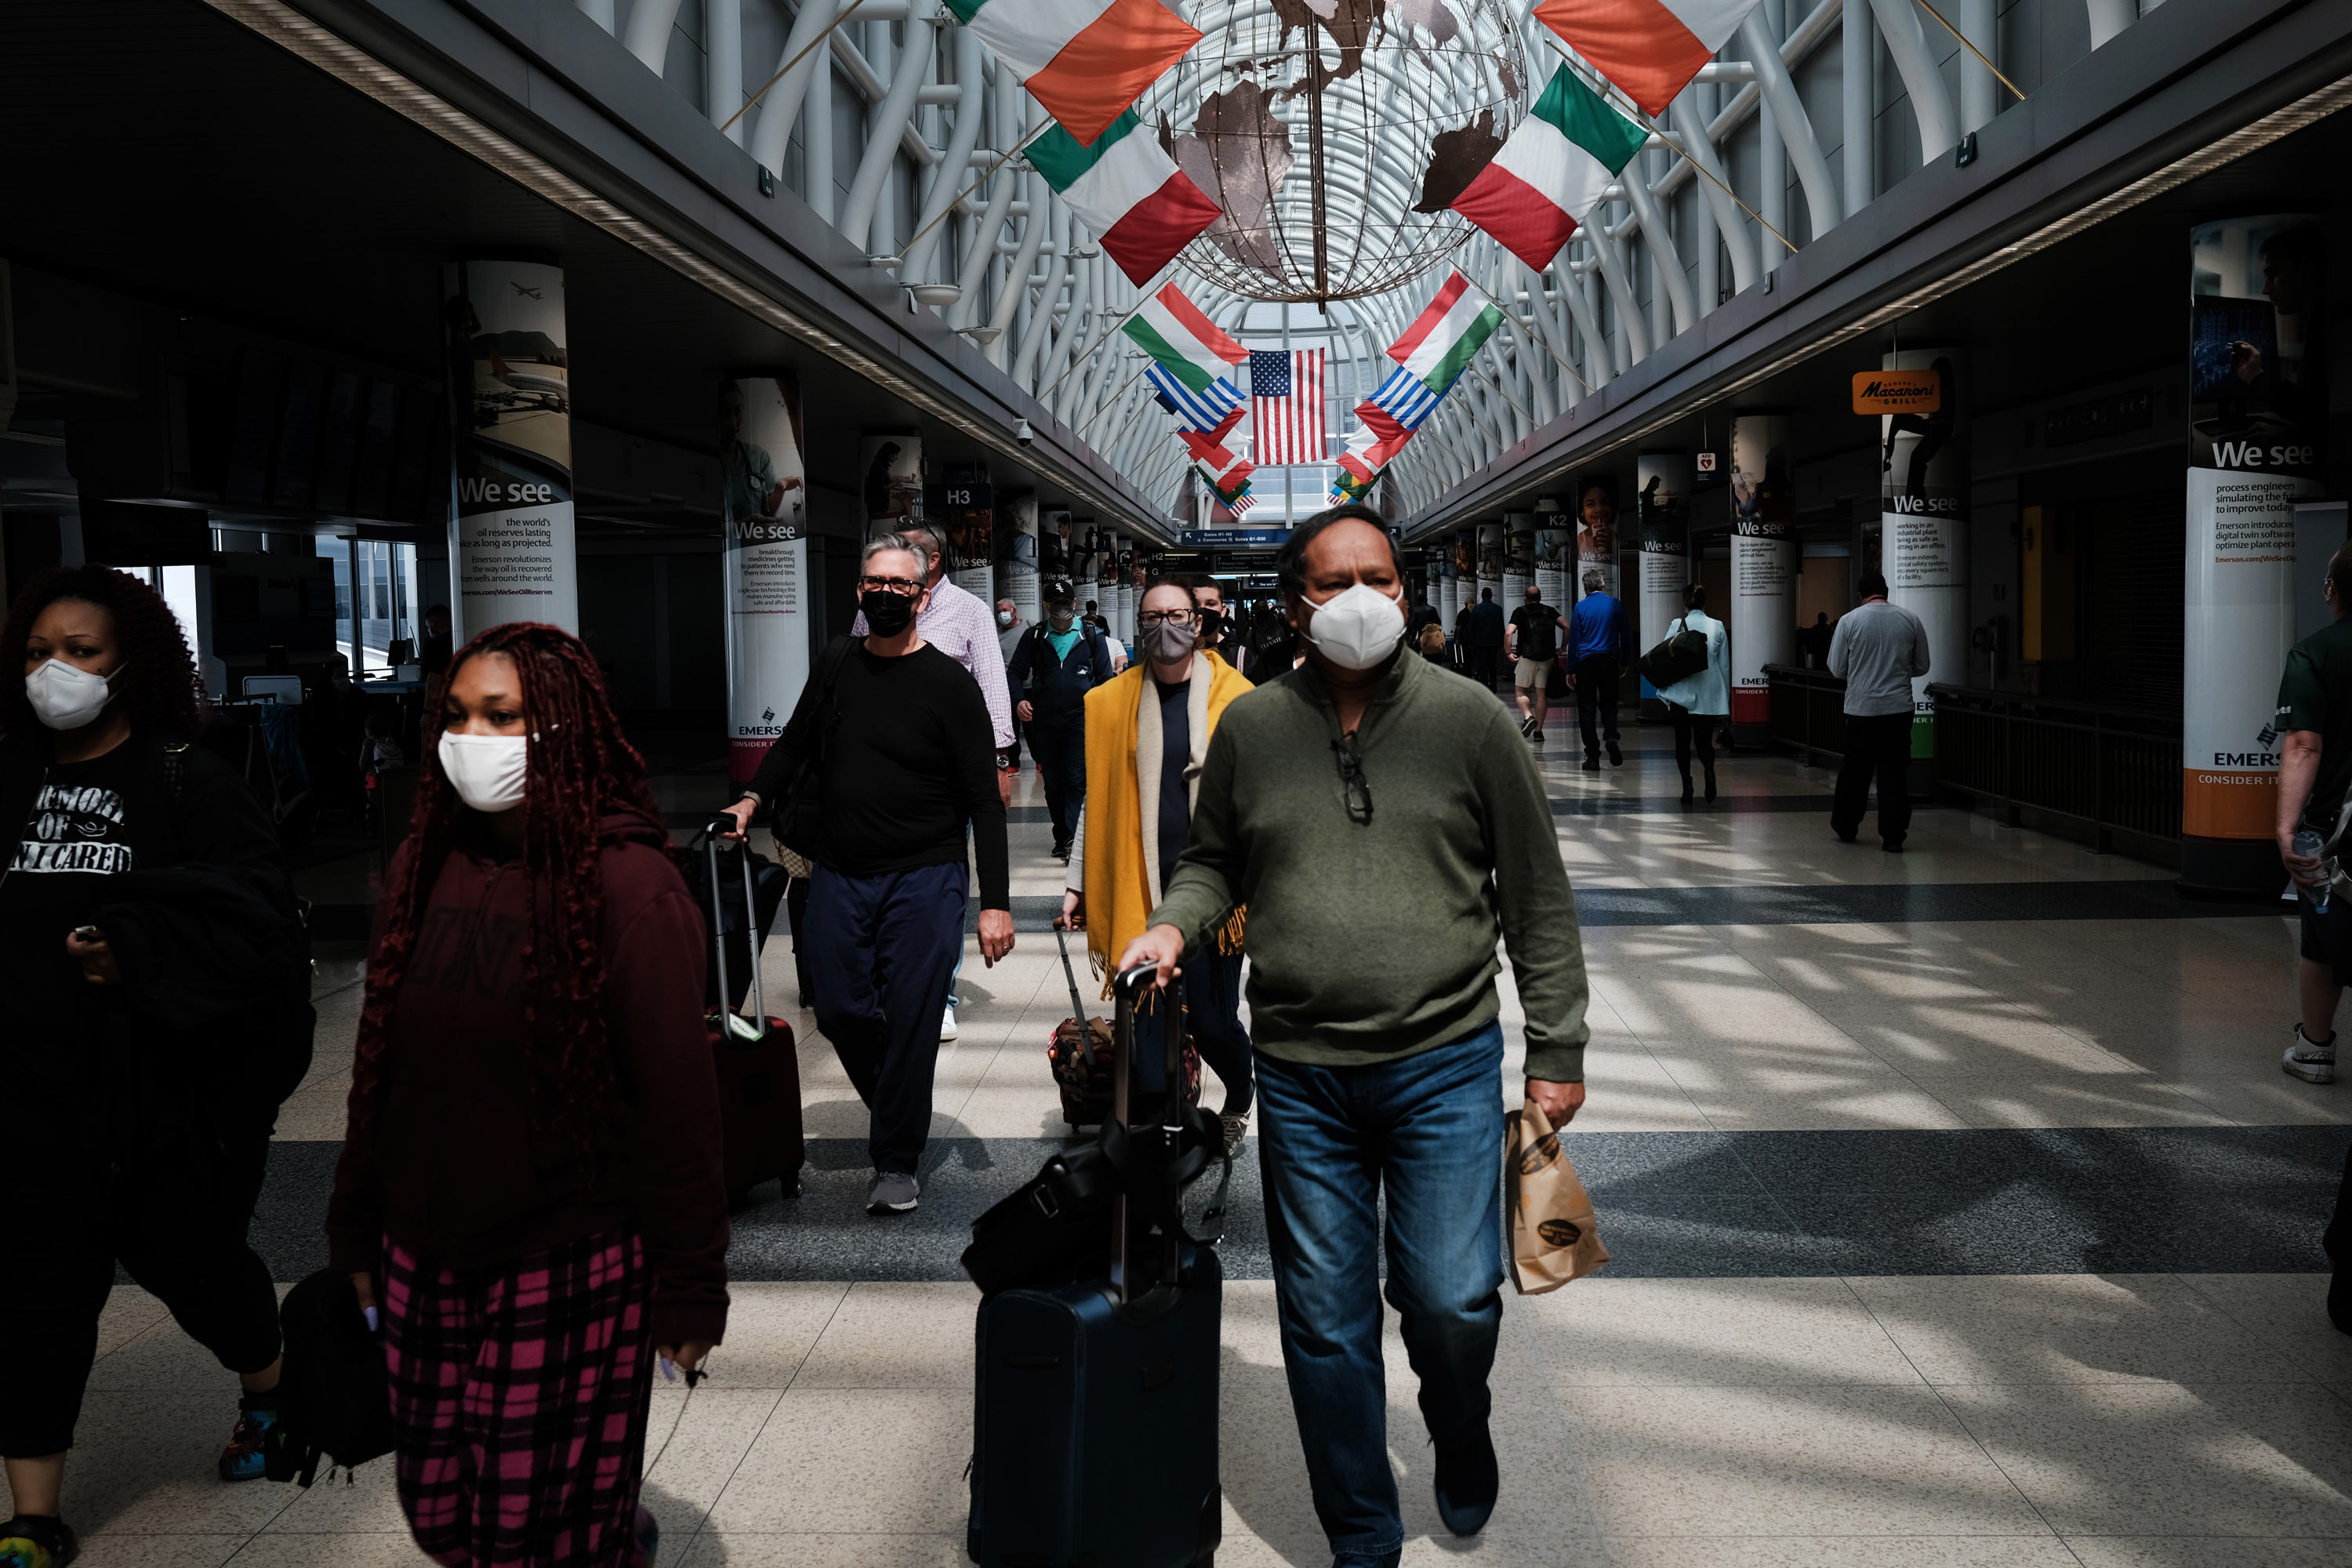 People walk through Chicago O'Hare airport on April 26 in Chicago.